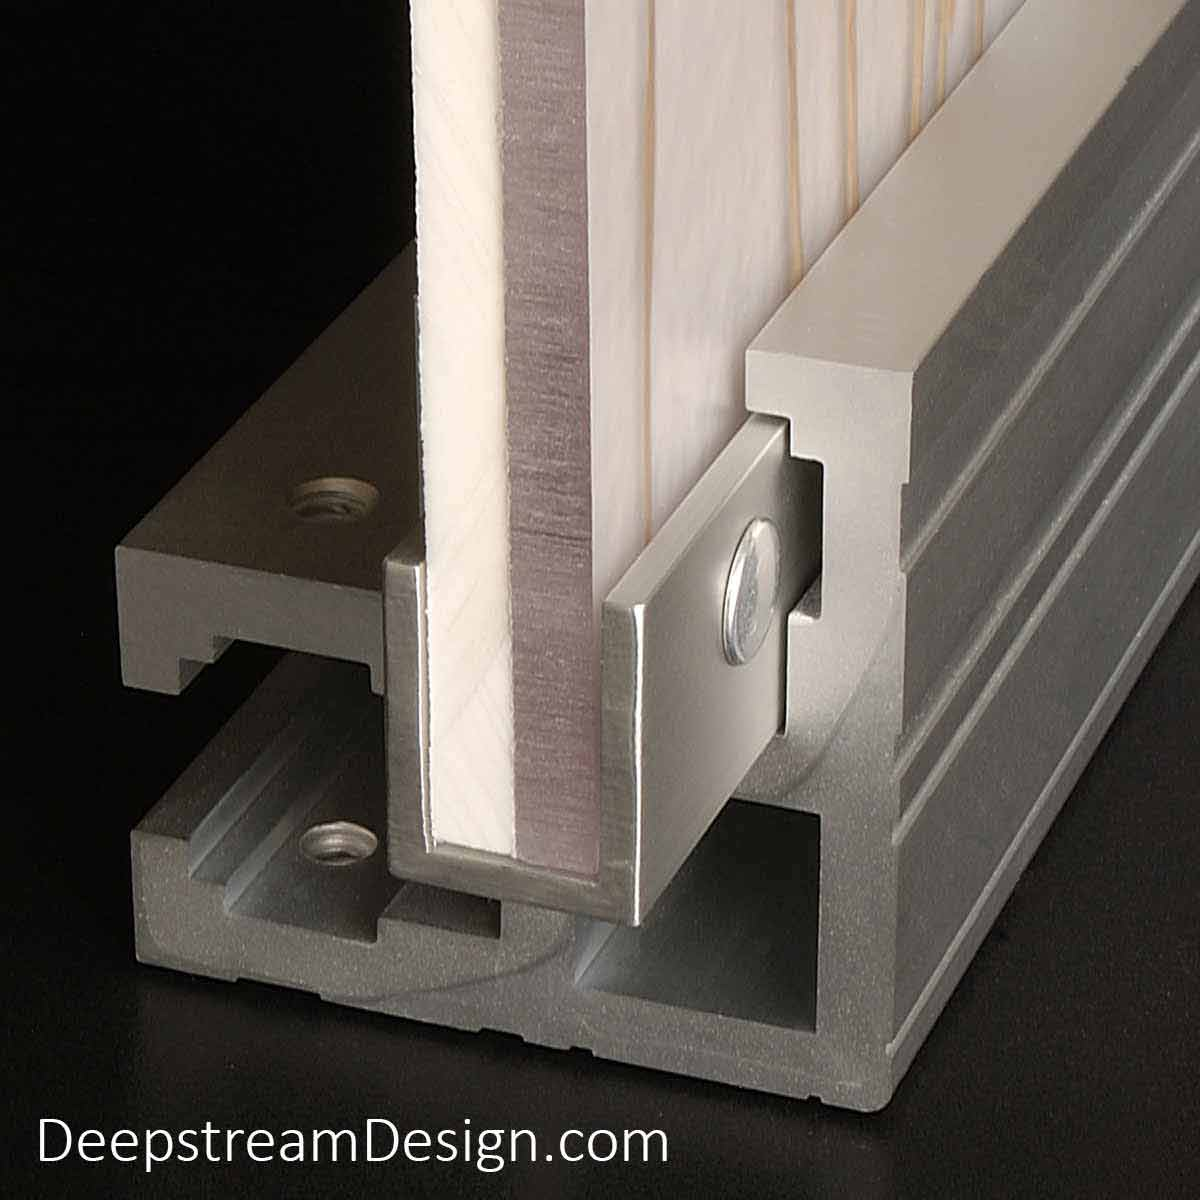 A studio photo showing the Audubon Structural Architectural Aluminum Frame System L extrusion holding a slide-in-easy composite panel in the L extrusions Channel Acceptance Slot. The composite panel in this example was created with a 3form Eco-resin panel backed by a white panel with both captured inside the Audubon systems U-channel extrusion and held in place by aluminum post screws.